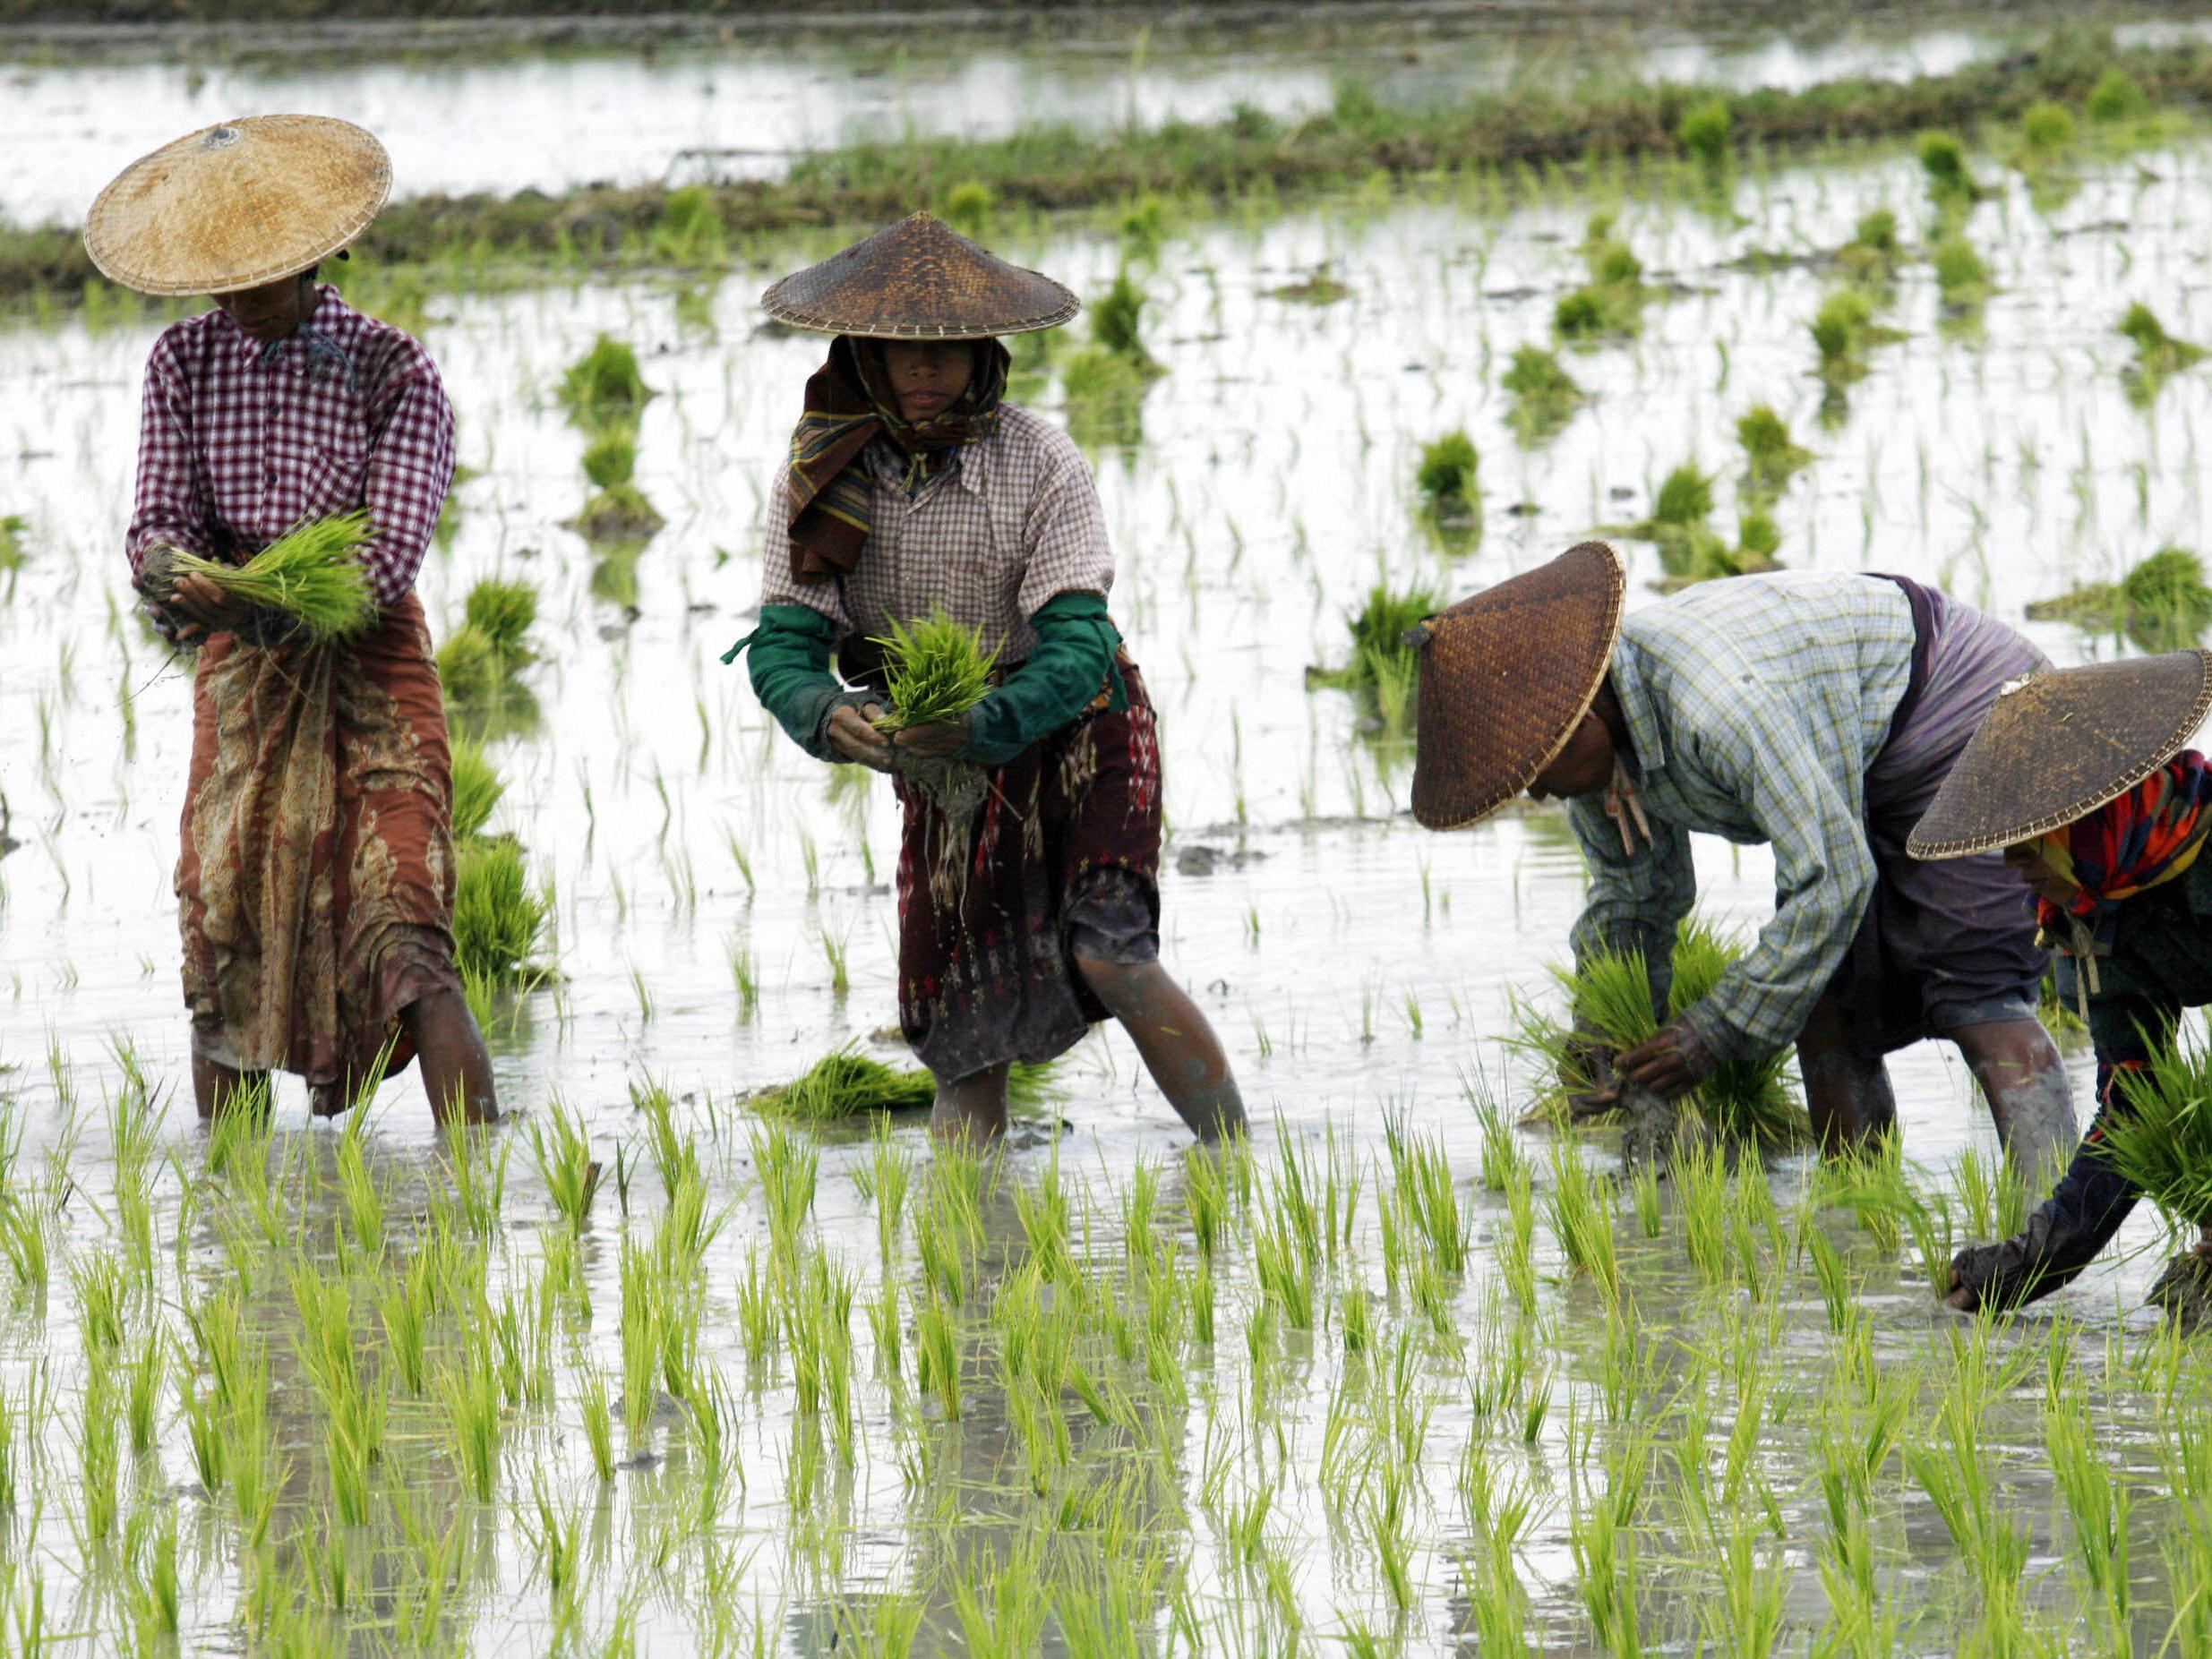 Rice farming up to twice as bad for climate change as previously thought, study reveals